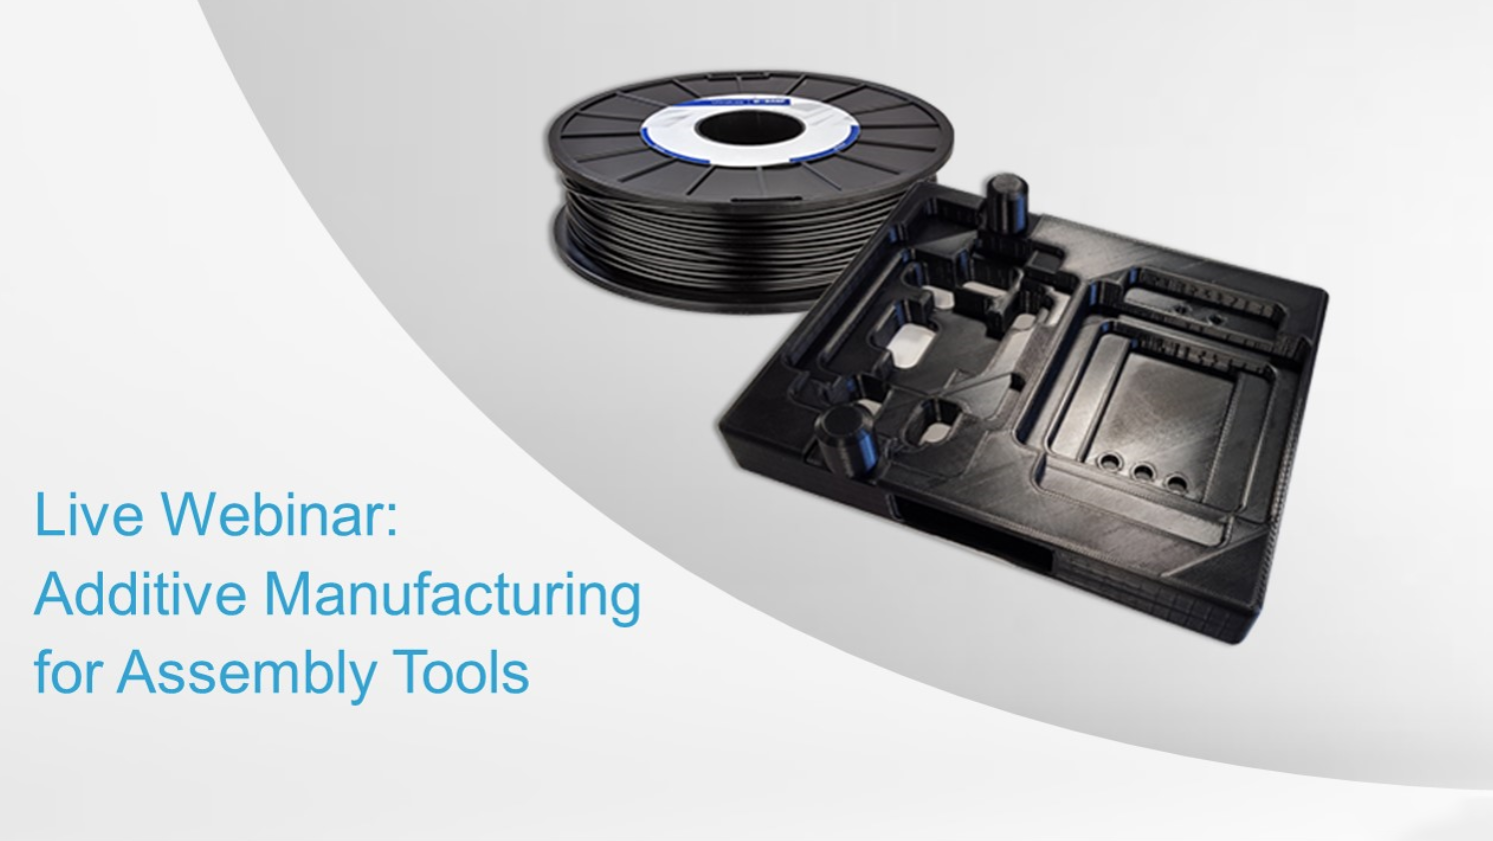 Live Webinar: Additive Manufacturing for Assembly Tools